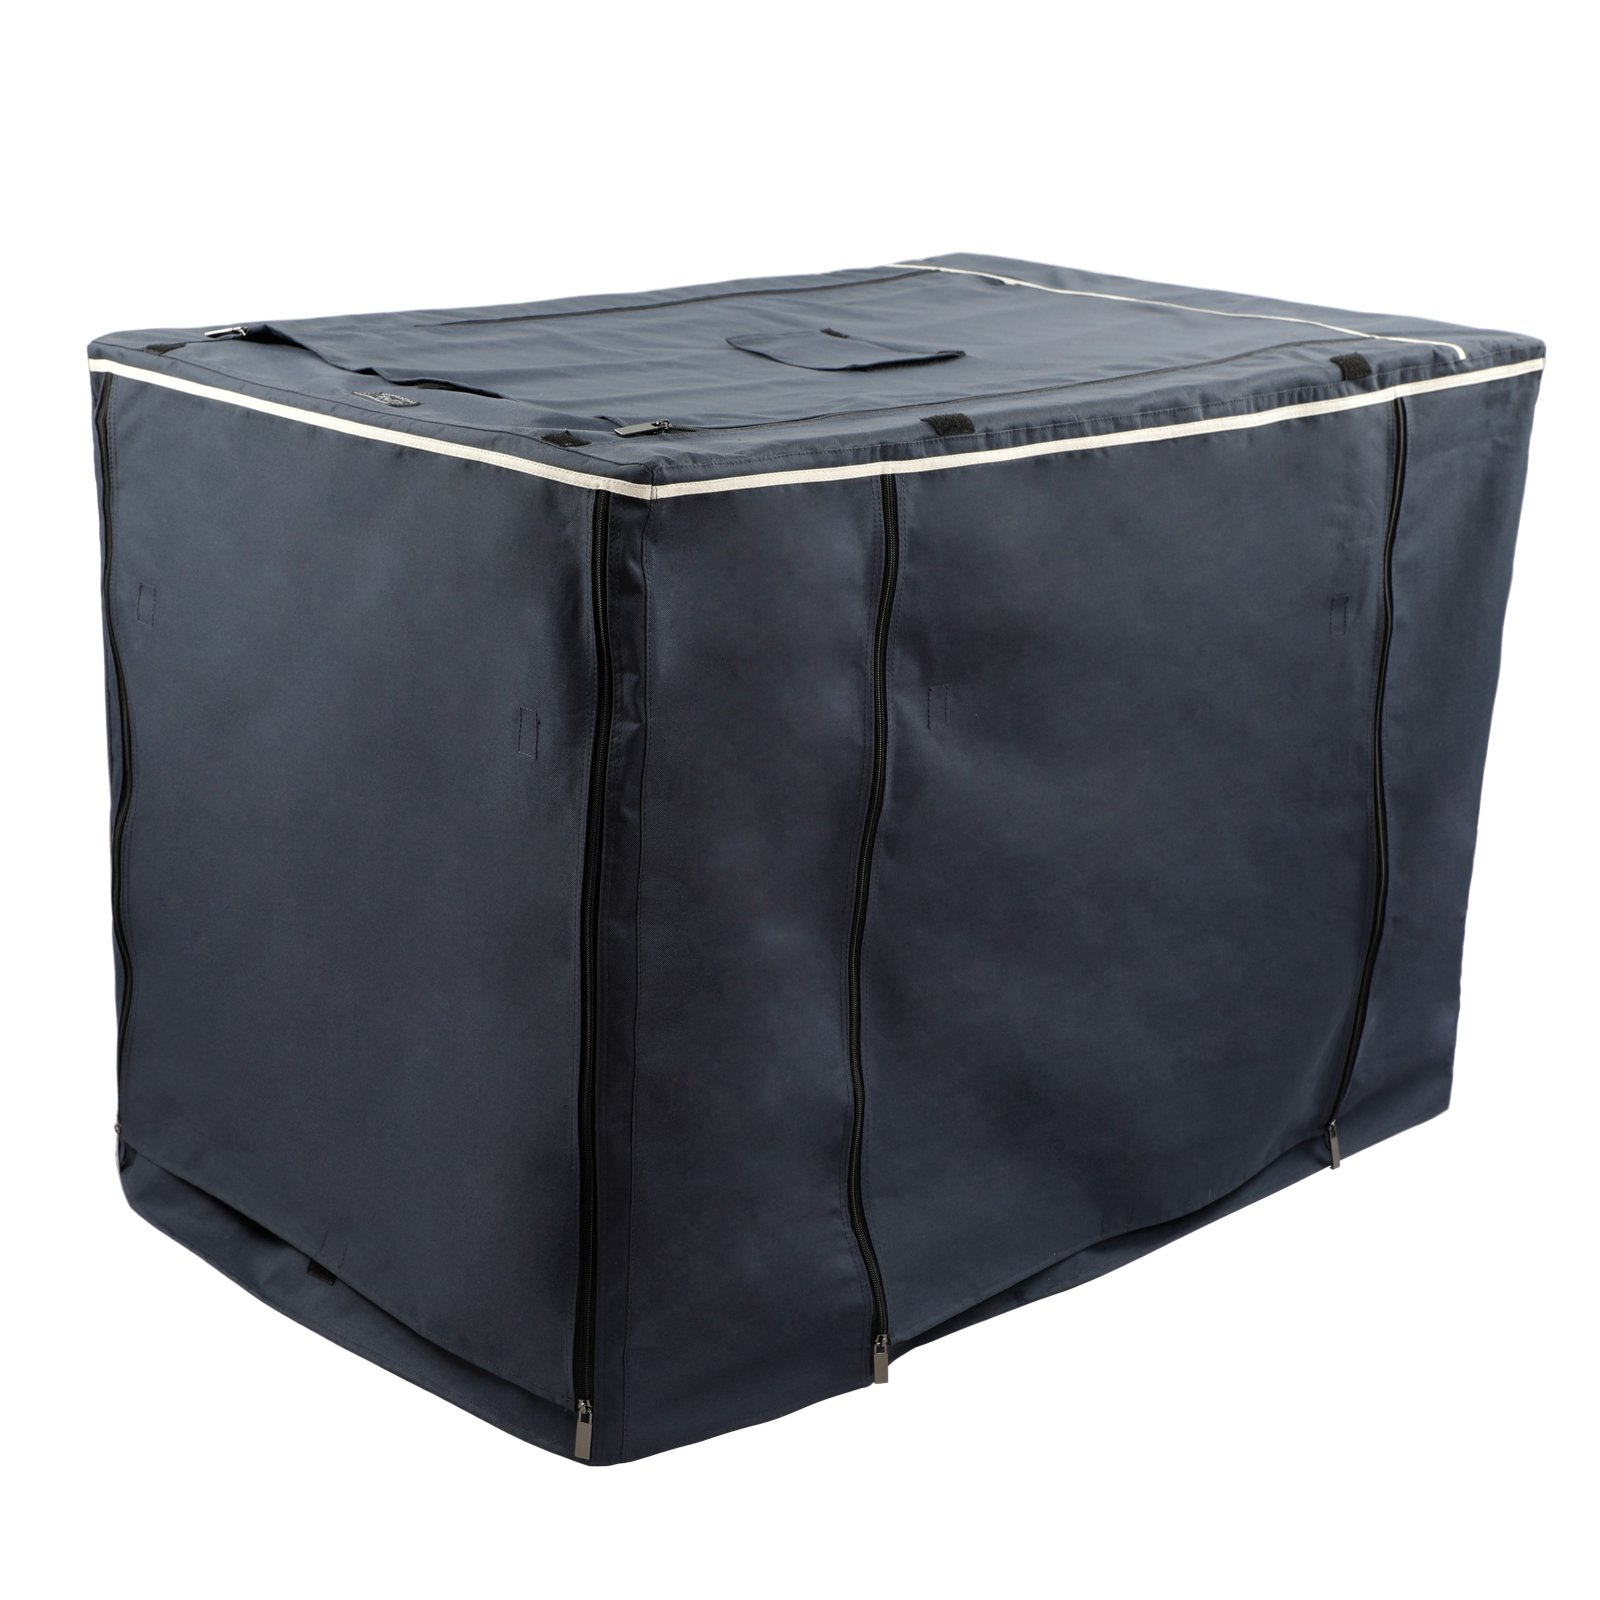 """Petsfit Oxford Cloth Pet Kennel Cover for Wire Dog Crates 42""""L x 28""""W x 30""""H, With Three-Side and Top Windows, Back Zipper, Dark Blue by Petsfit (Image #7)"""